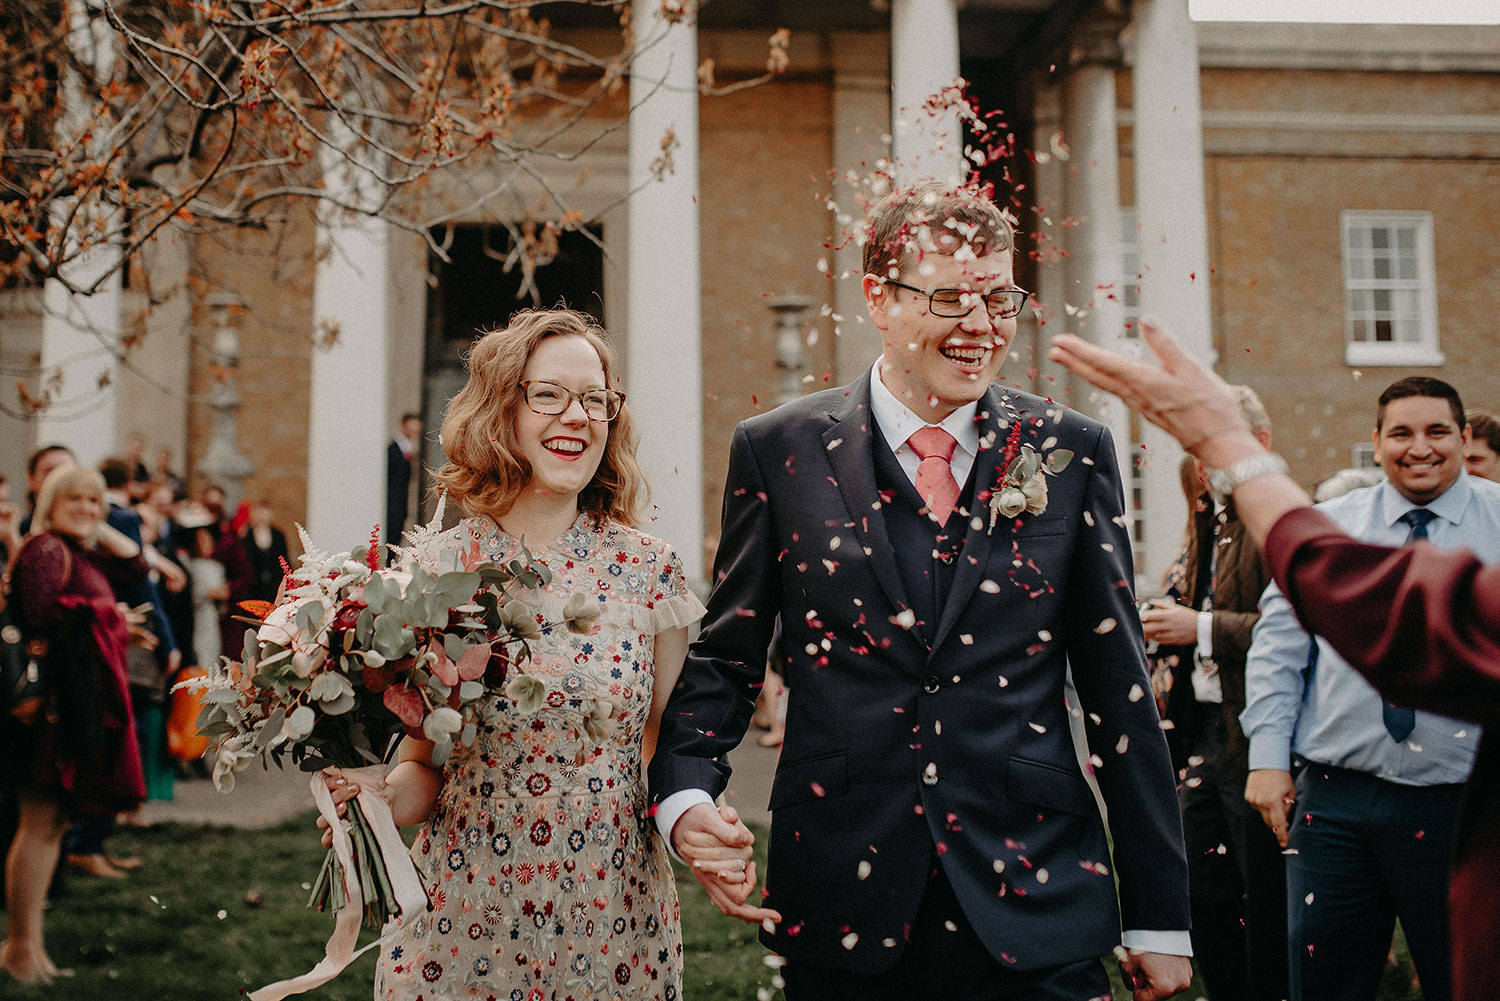 Groom getting confetti thrown in his face on wedding day at The Asylum